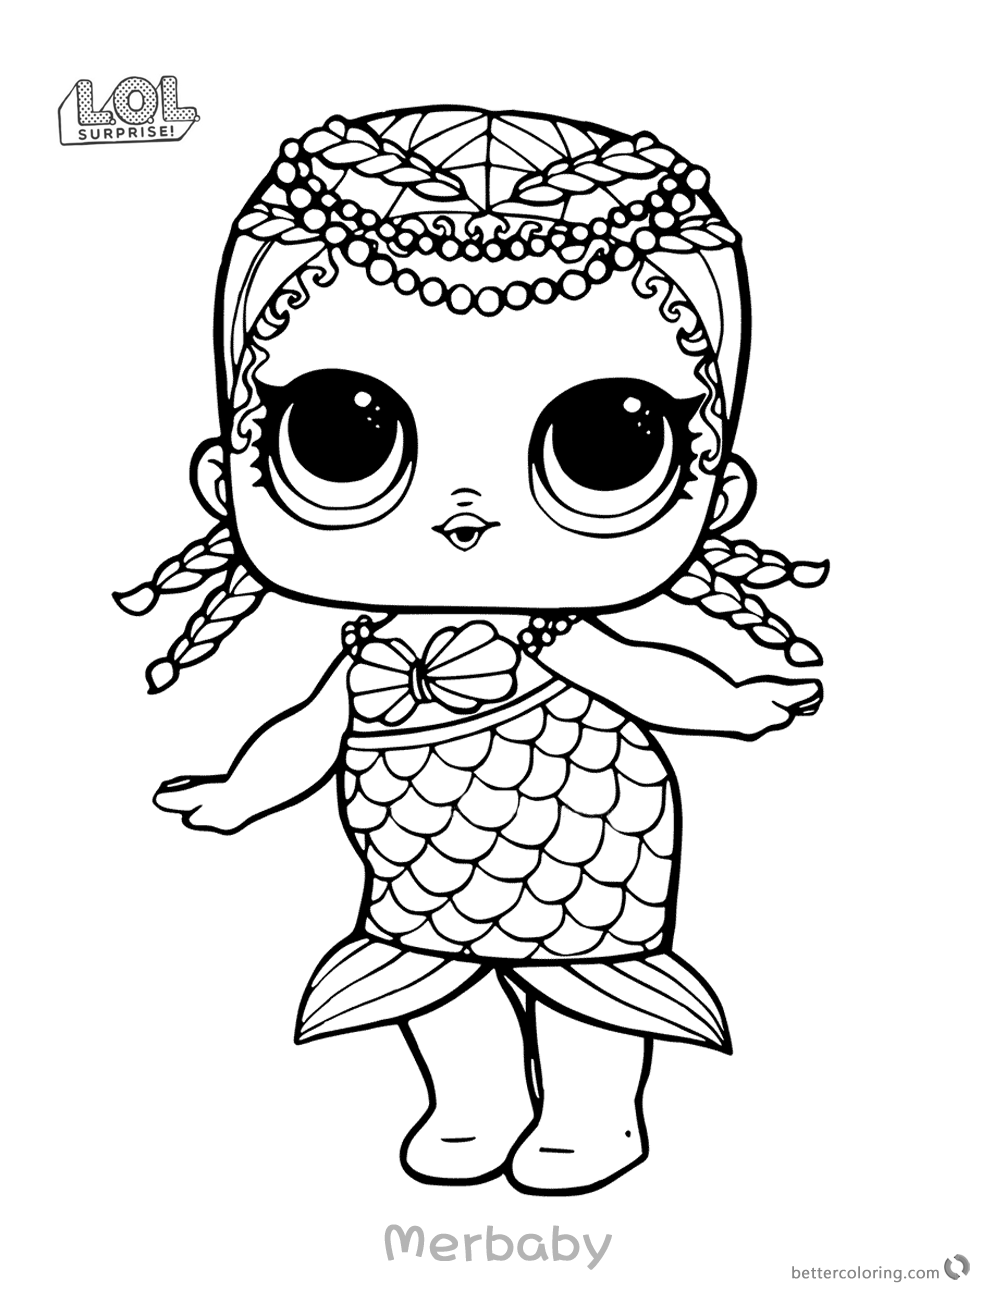 Mermaid lol surprise doll coloring pages merbaby printable gte coloring and have fuin this holidays coloring